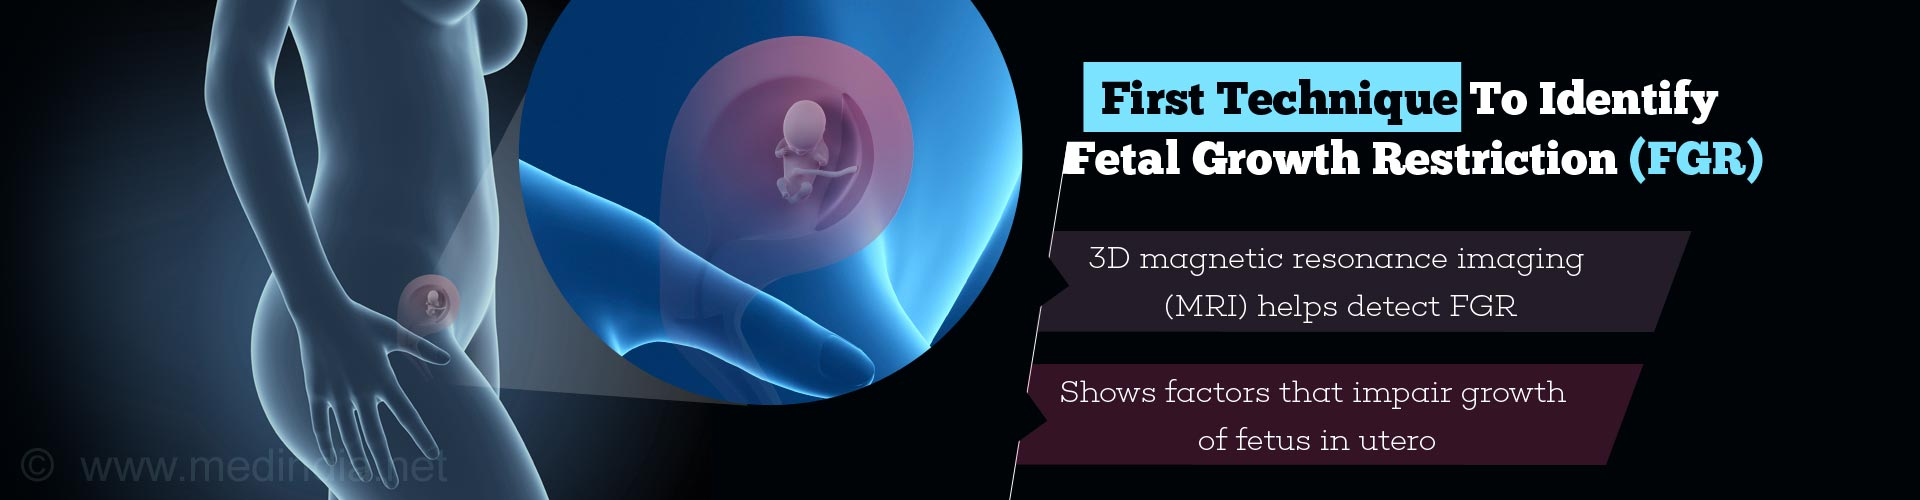 first technique to identify fetal growth restriction (fgr) - 3D magnetic resonance imaging (MRI) helps detect FGR - shows factors that impair growth of fetus in utero